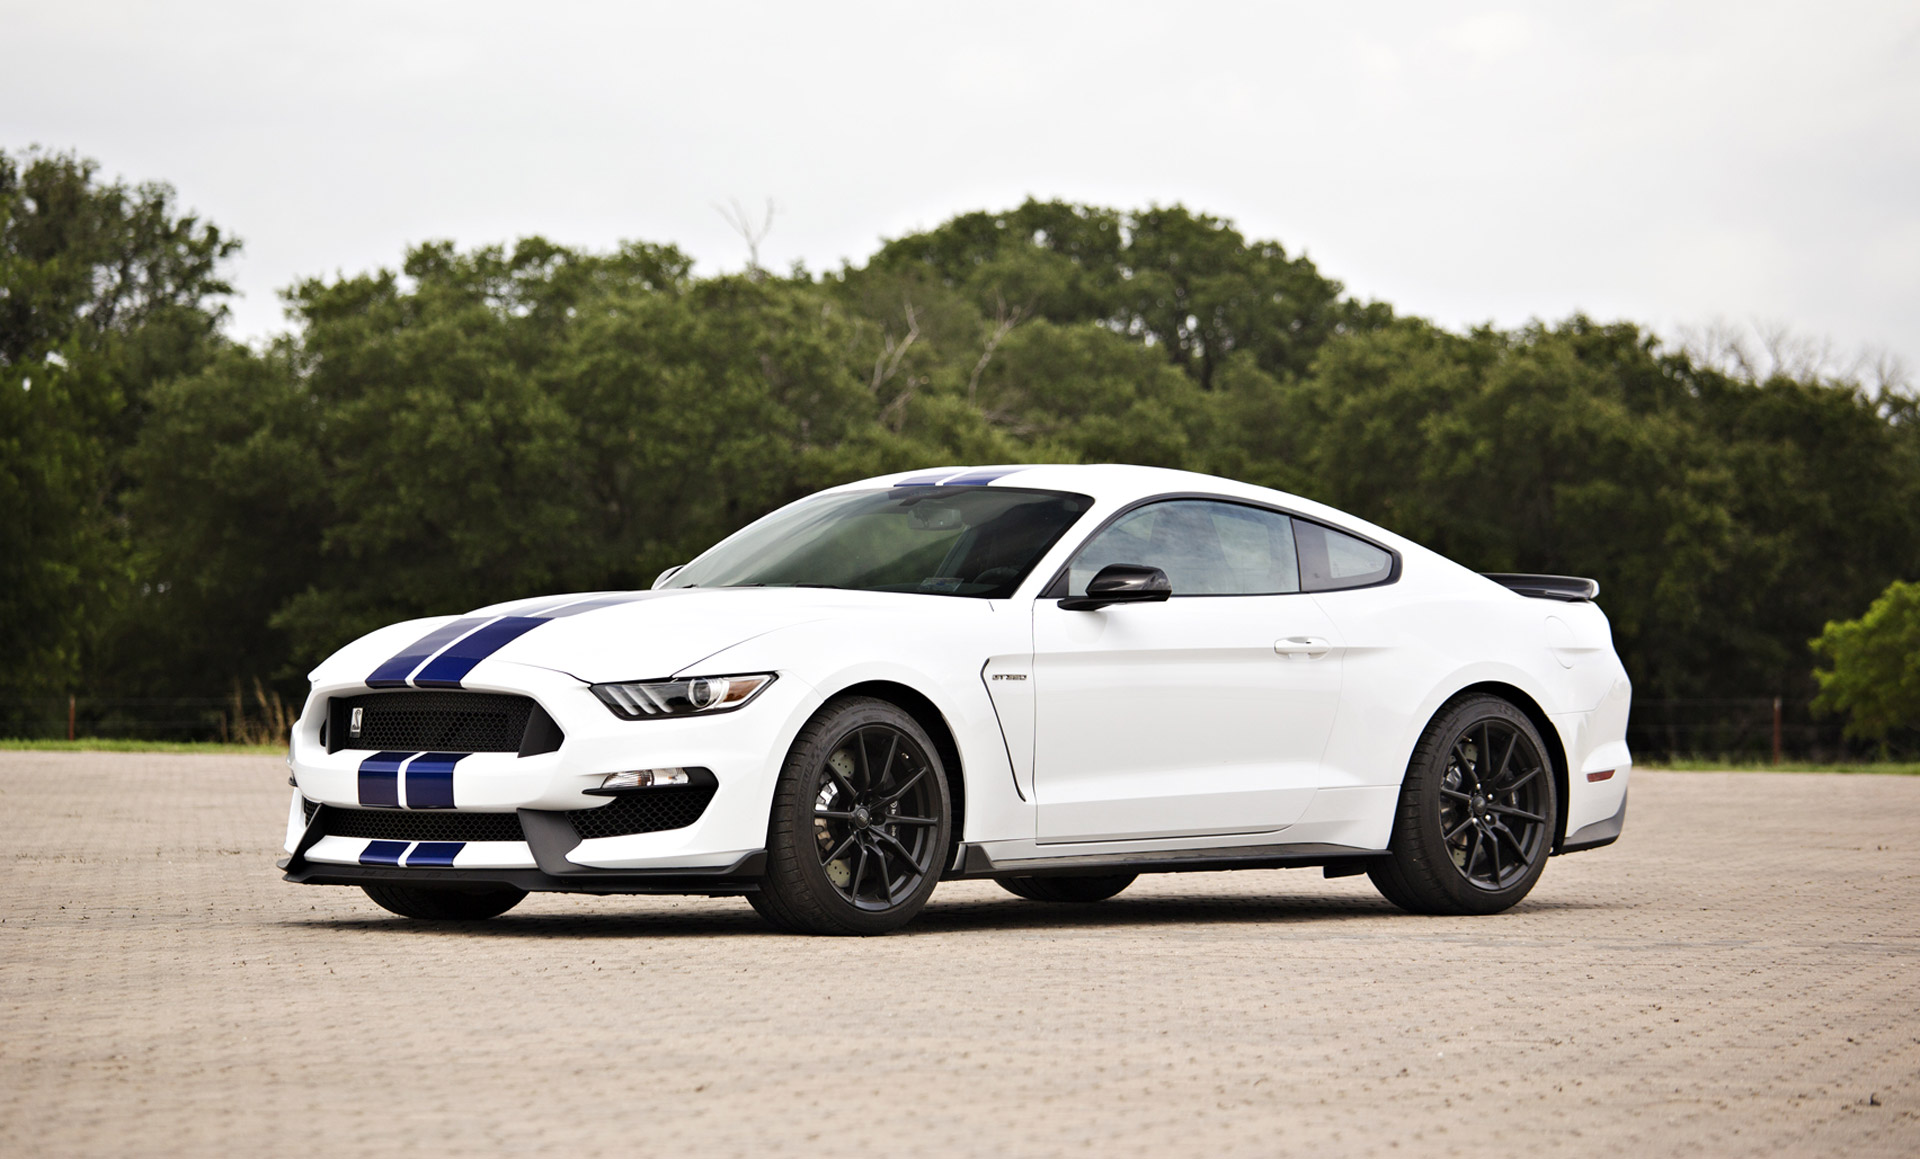 2018 Mustang Gt Pricing >> Ford Mustang Shelby GT350 Signed By George W. Bush Helps ...